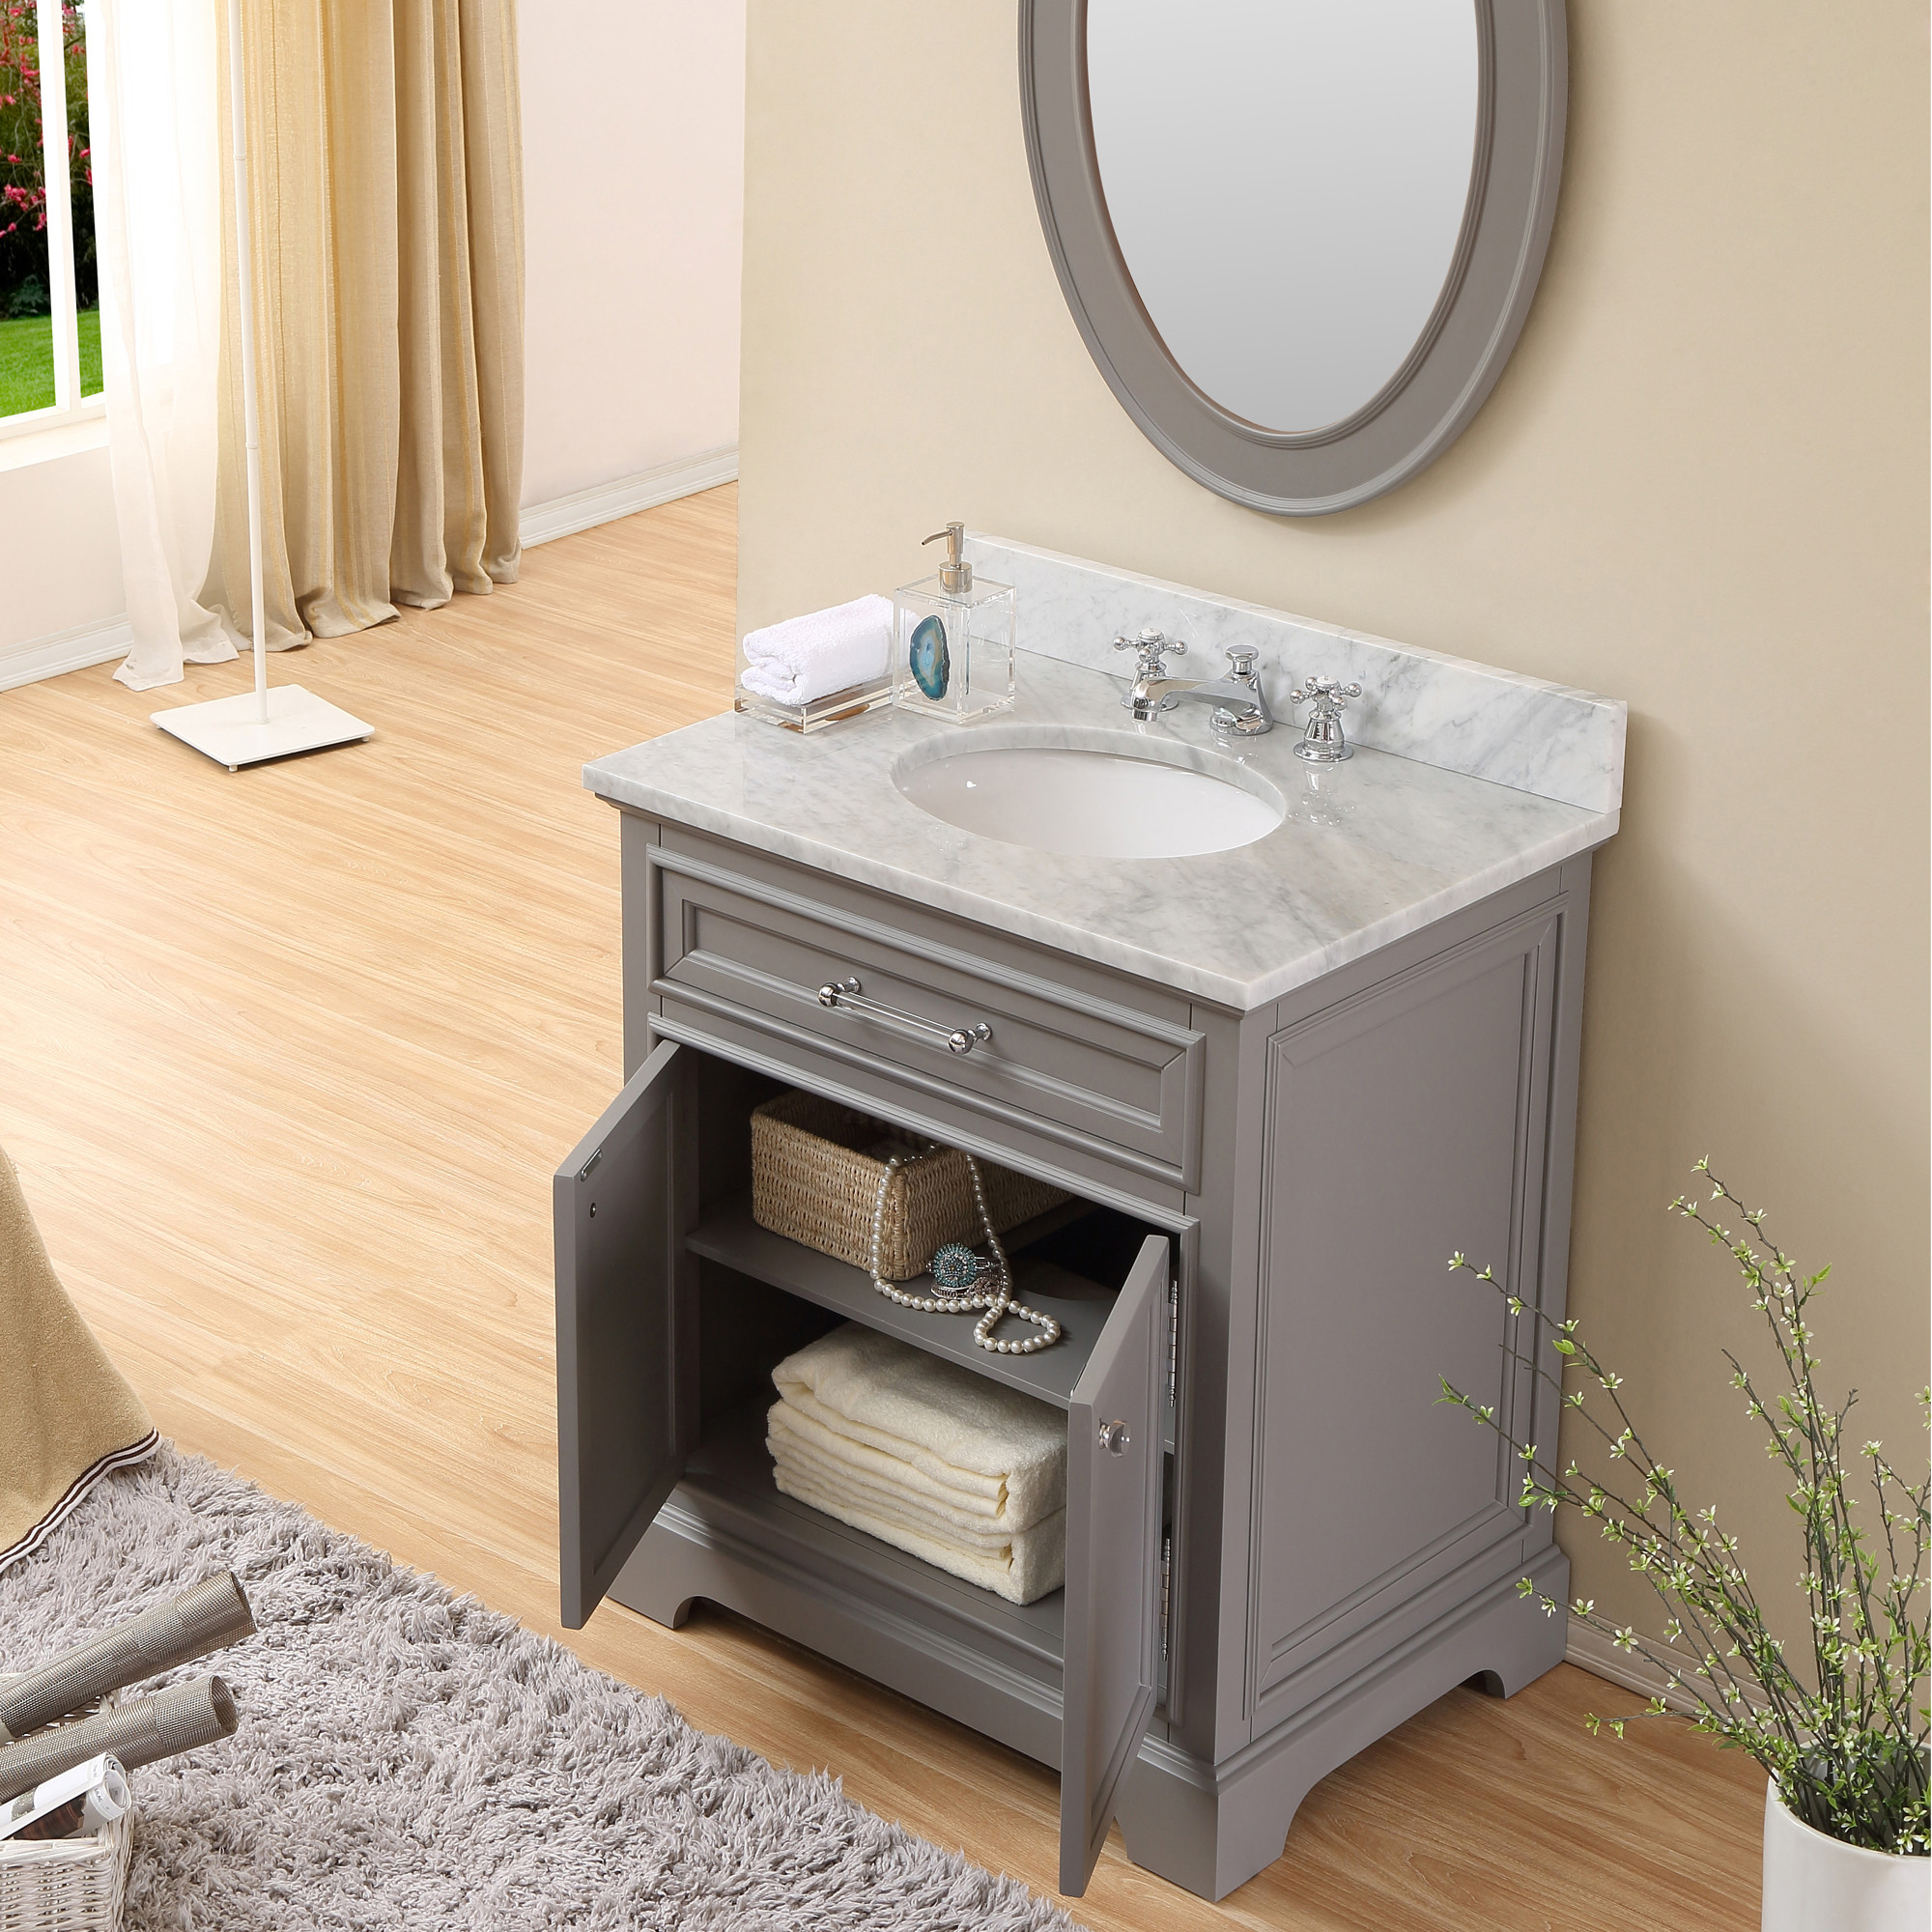 30 inch Traditional Bathroom Vanity Gray Finish for traditional bathroom vanity designs  10lpwja